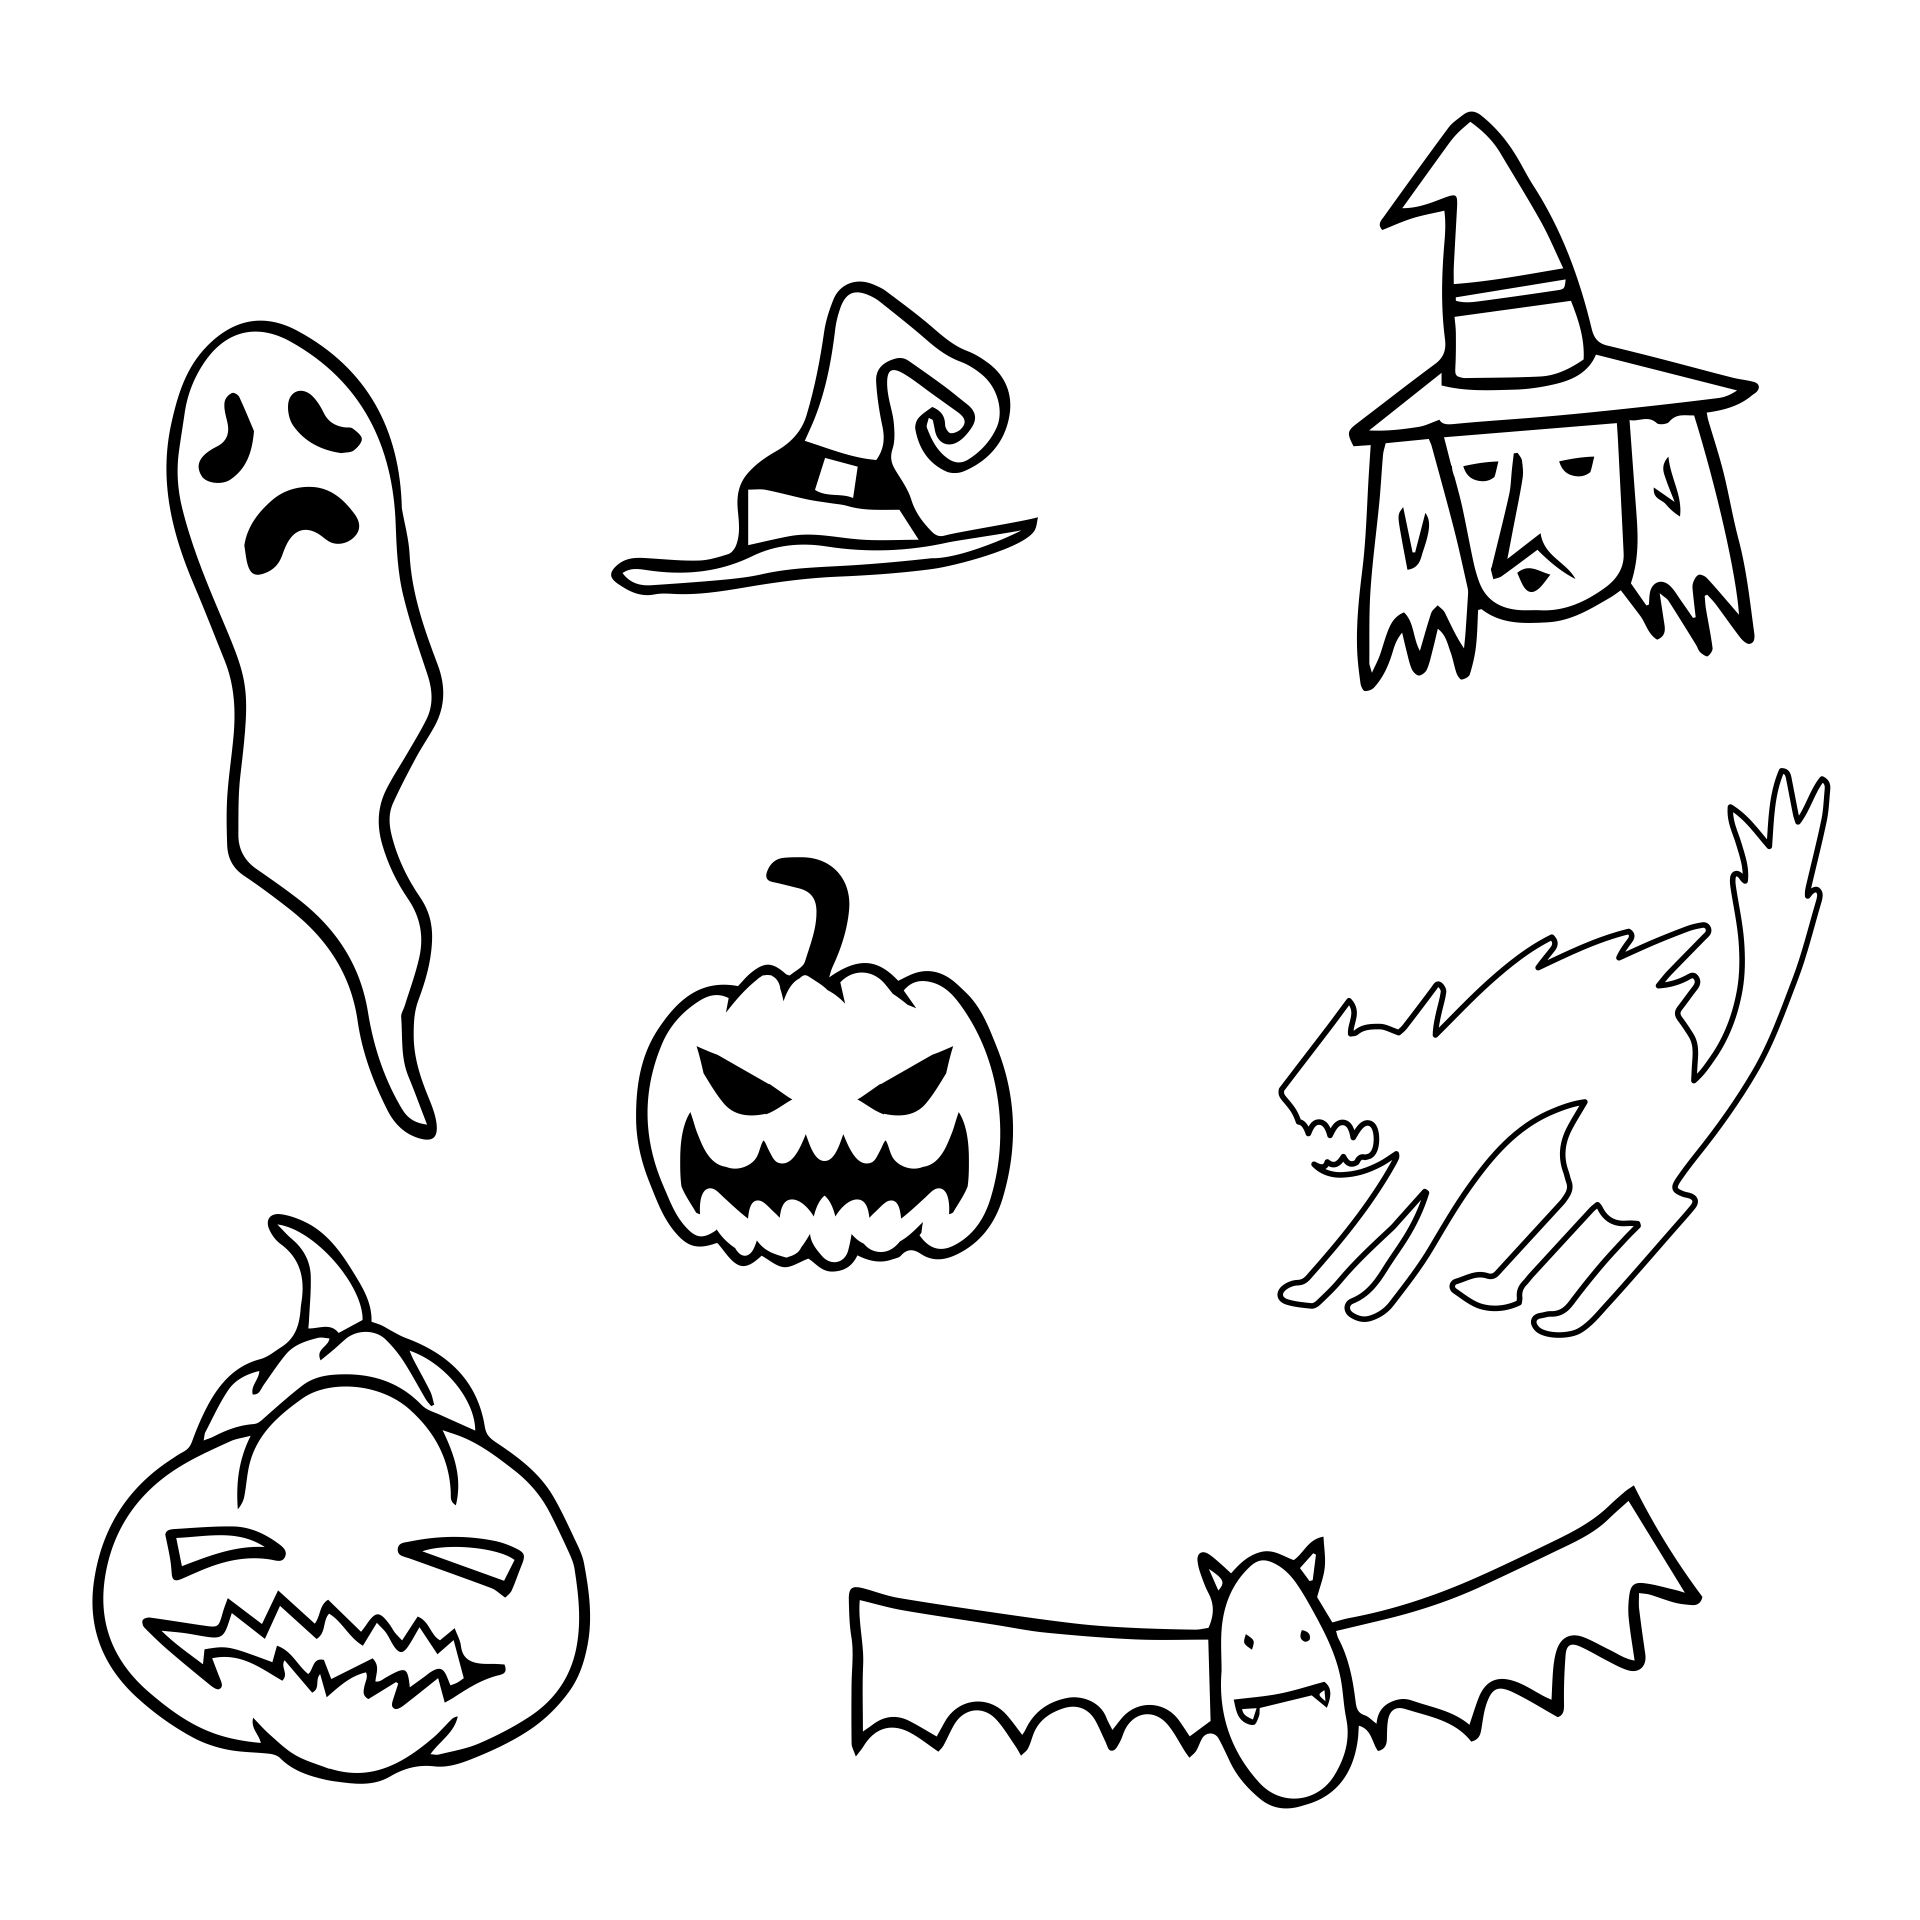 Printable Halloween Stencils for Kids